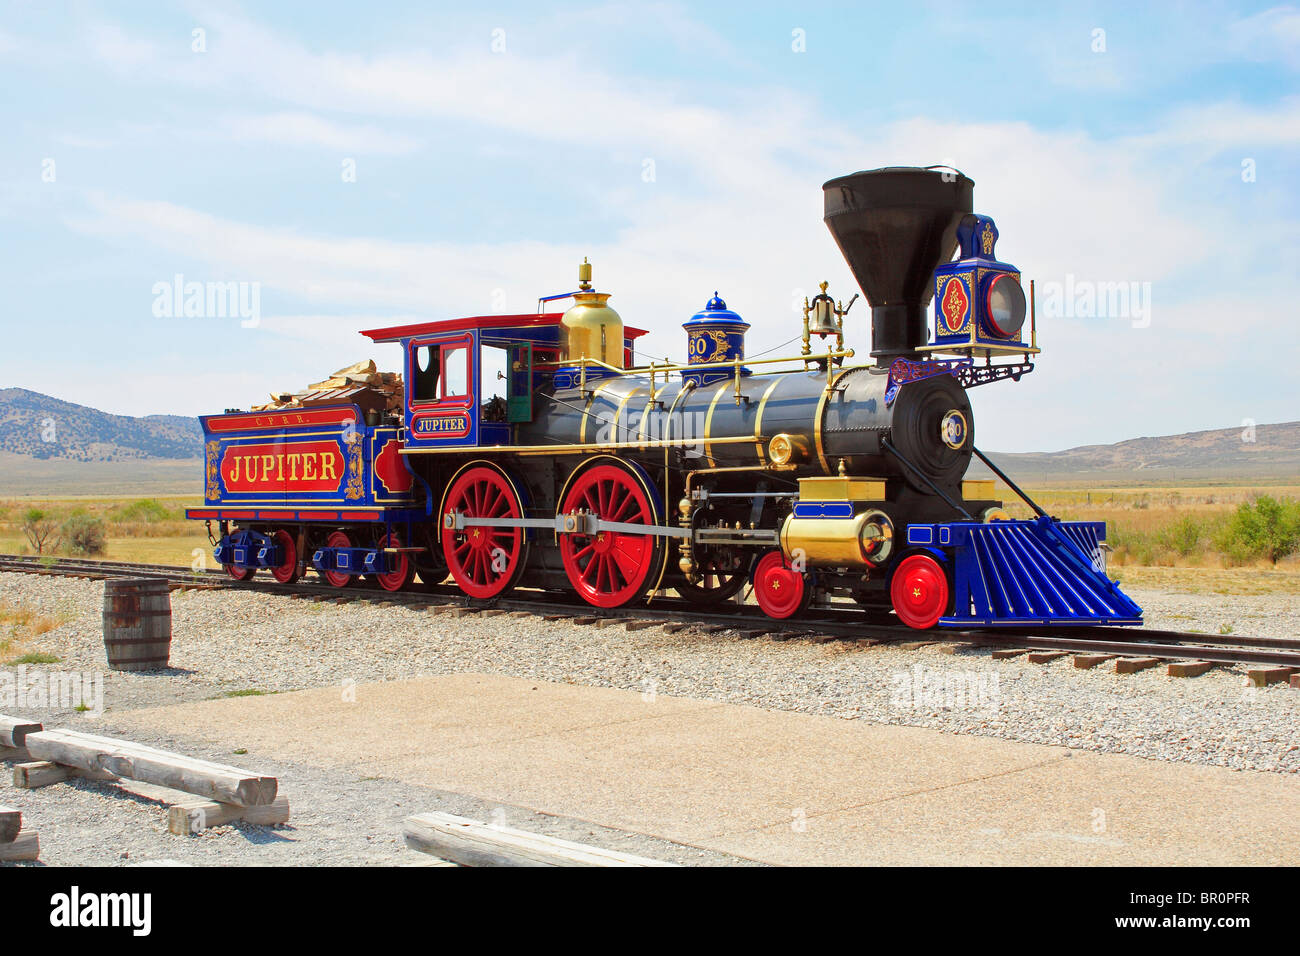 Central Pacific Railroad #60, the Jupiter, sits on the rails at Golden Spike National Historic site at Promontory - Stock Image